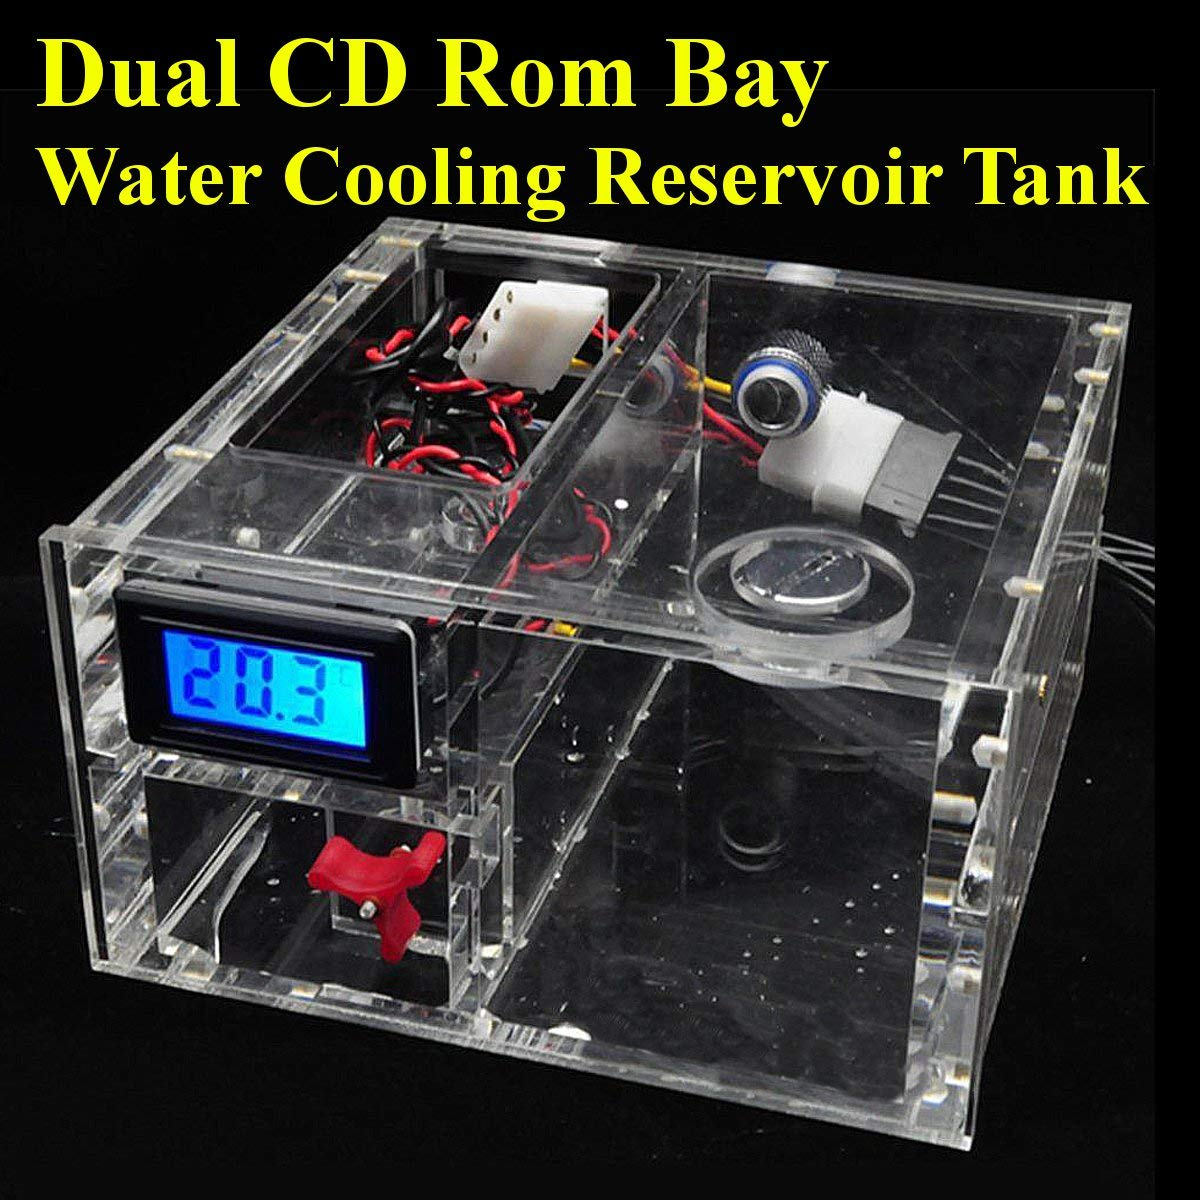 Dual CD Rom Bay Water Cooling Reservoir Tank G1 4 Thermometer Fmeter Parts   White, S